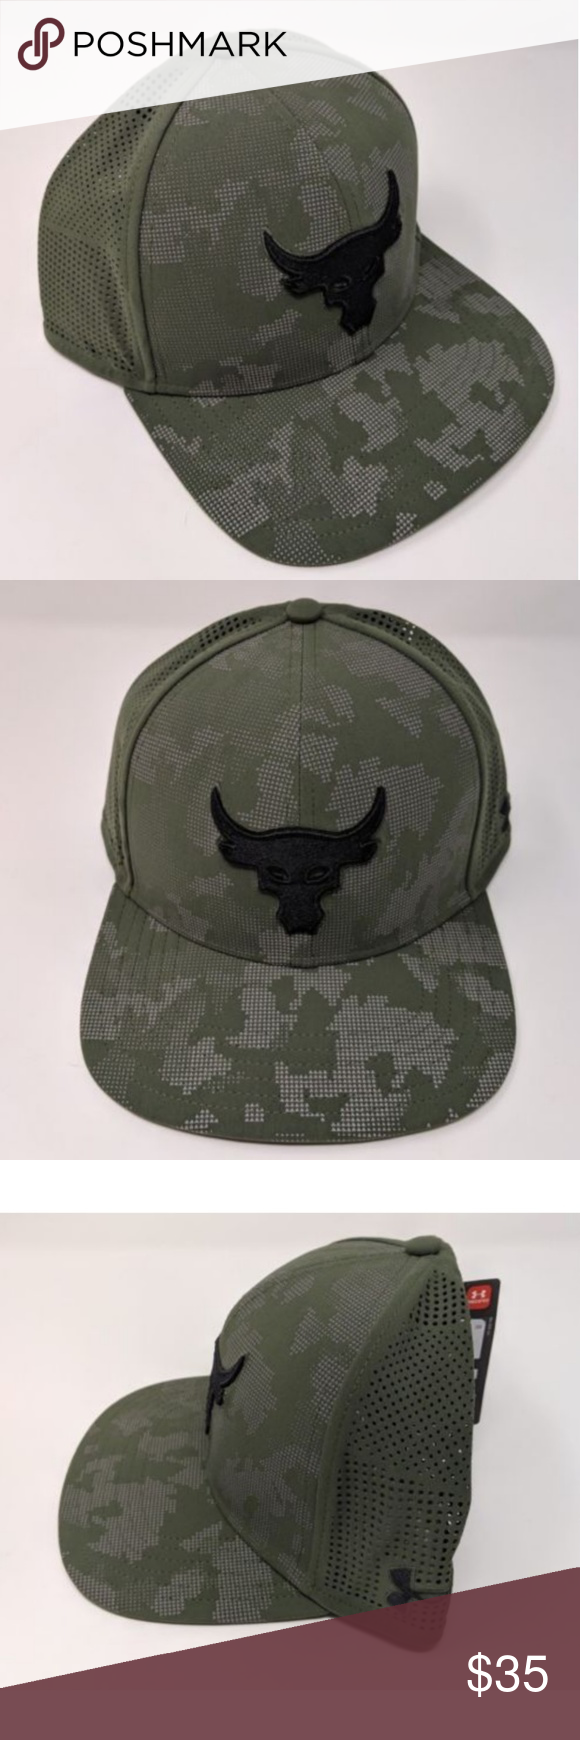 6751dd9d Under Armour UA X Project Rock Snapback Cap Hat Under Armour UA X Project  Rock Mesh Back SuperVent Mens Snapback Cap Flat Hat Under Armour  Accessories Hats